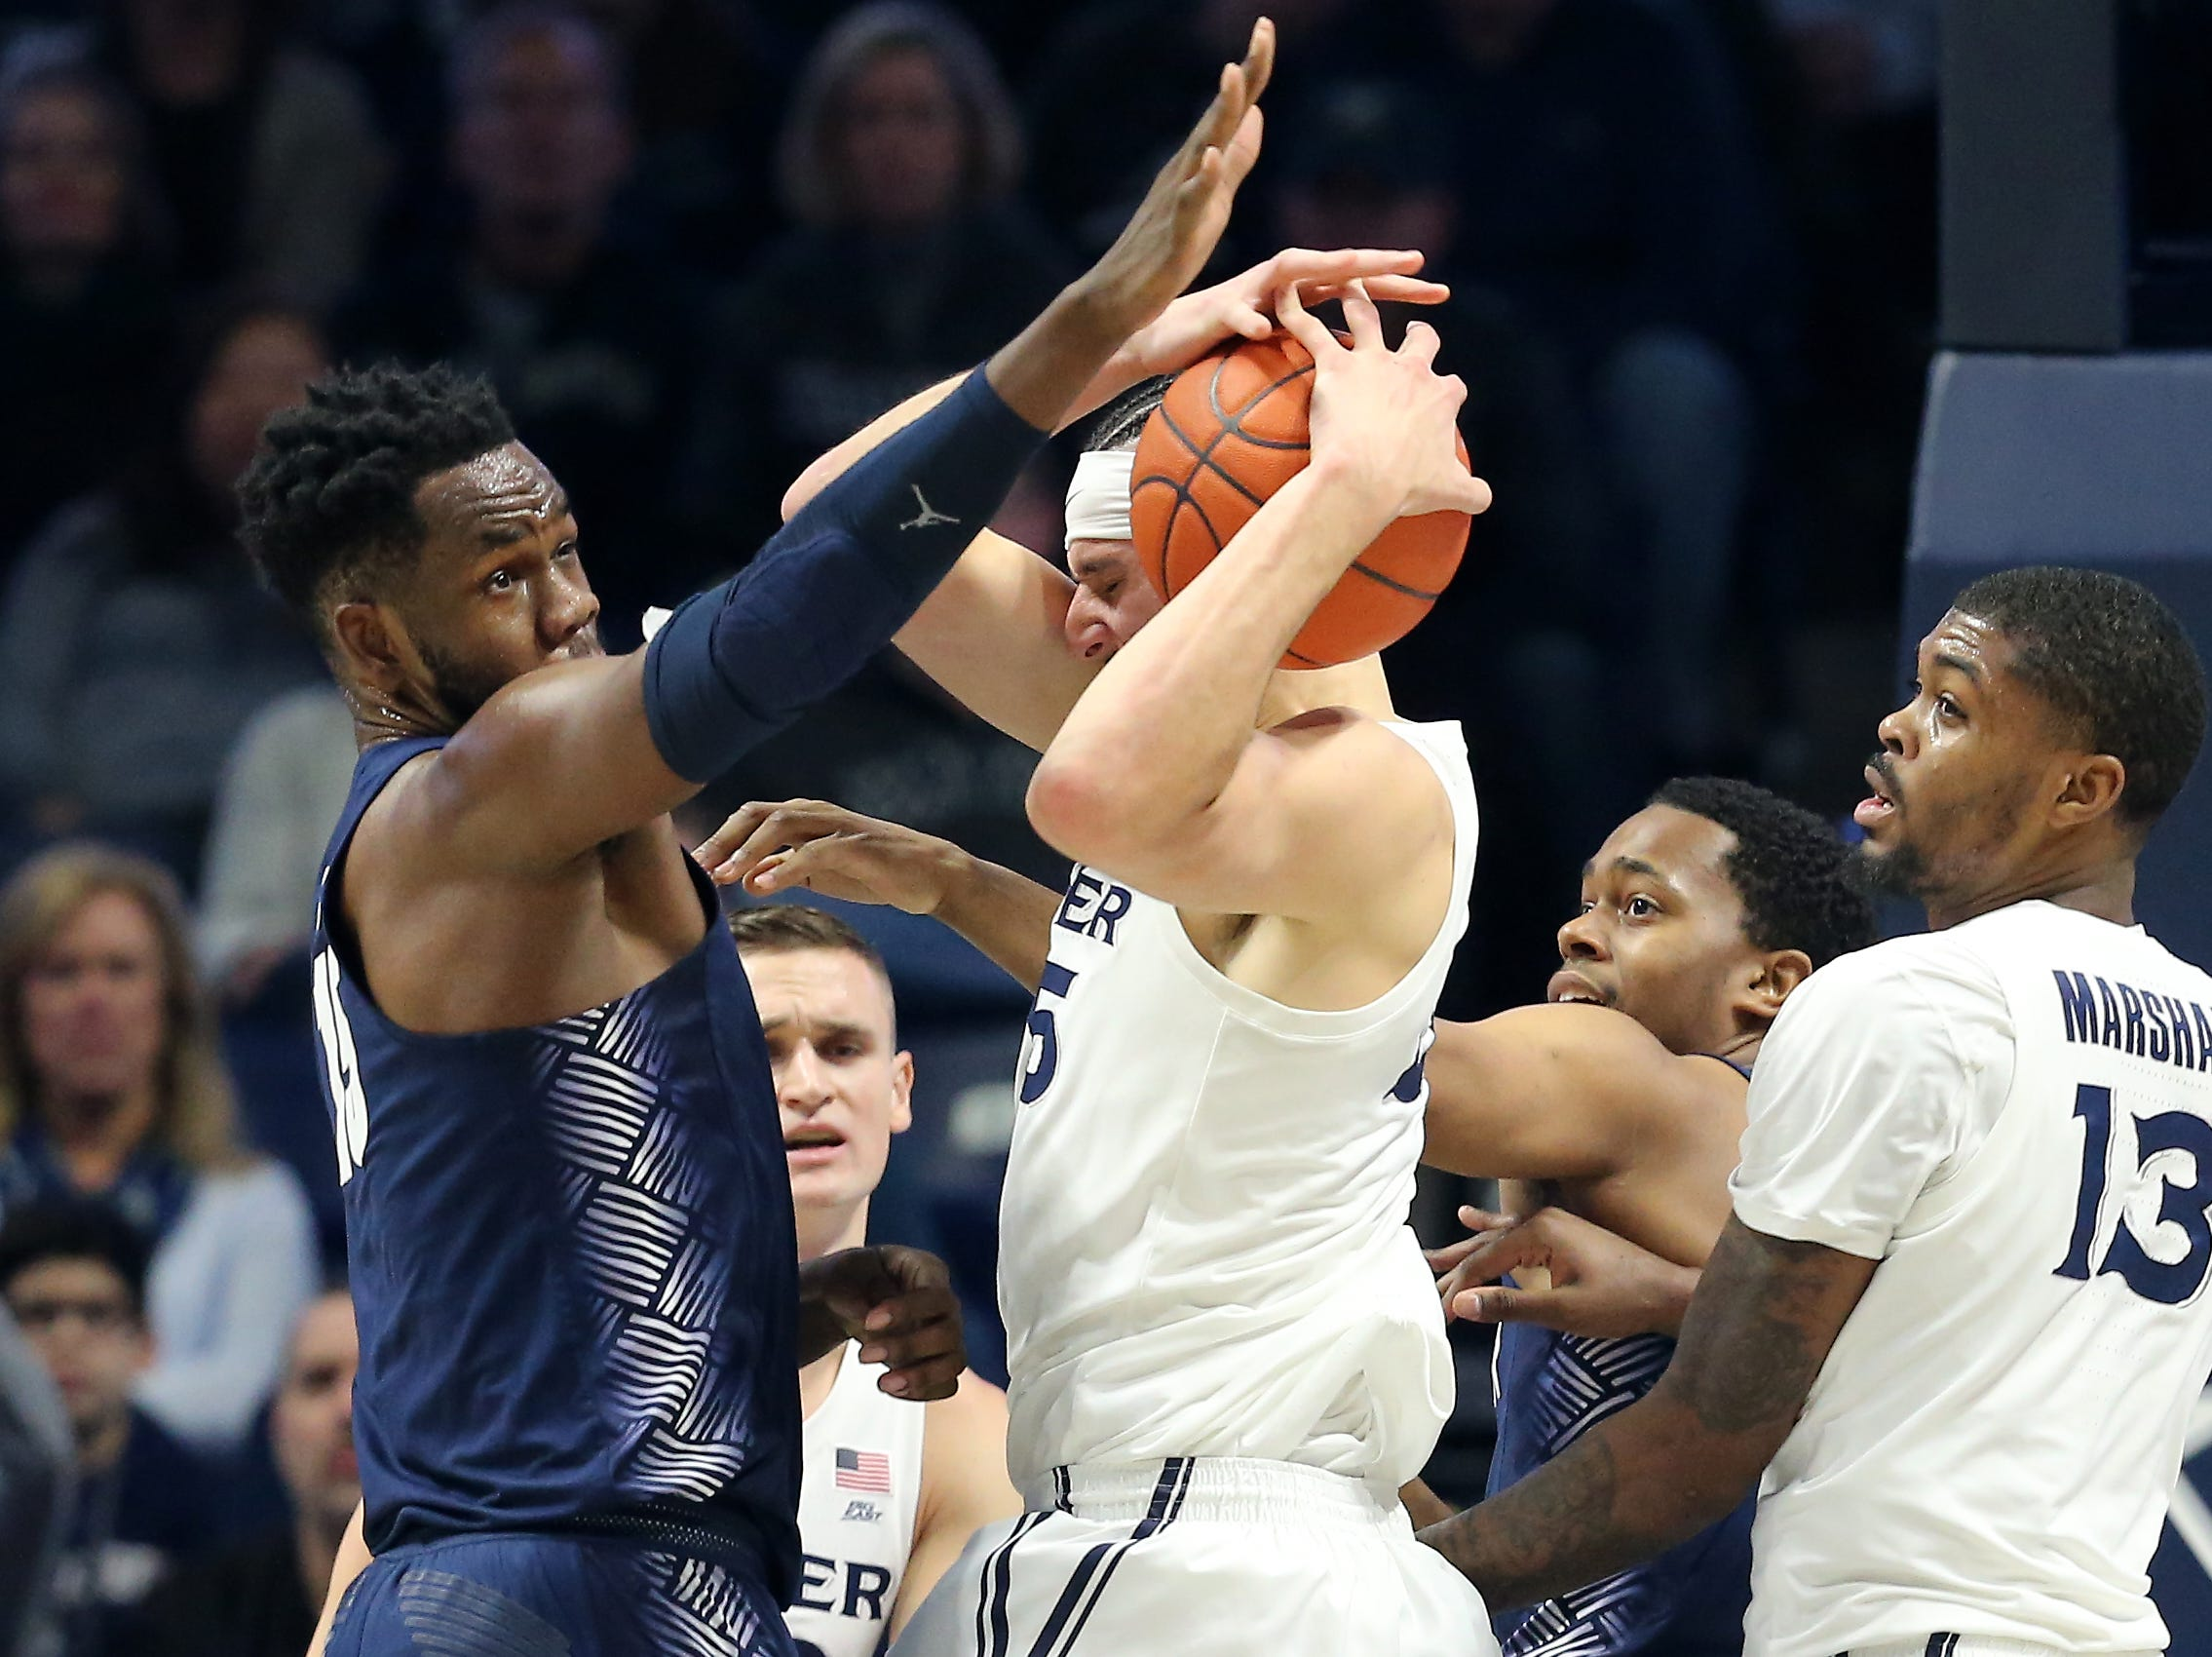 Xavier Musketeers forward Zach Hankins (35) collects a rebound in the first half of an NCAA basketball game against the Georgetown Hoyas, Wednesday, Jan. 9, 2019, at the Cintas Center in Cincinnati.